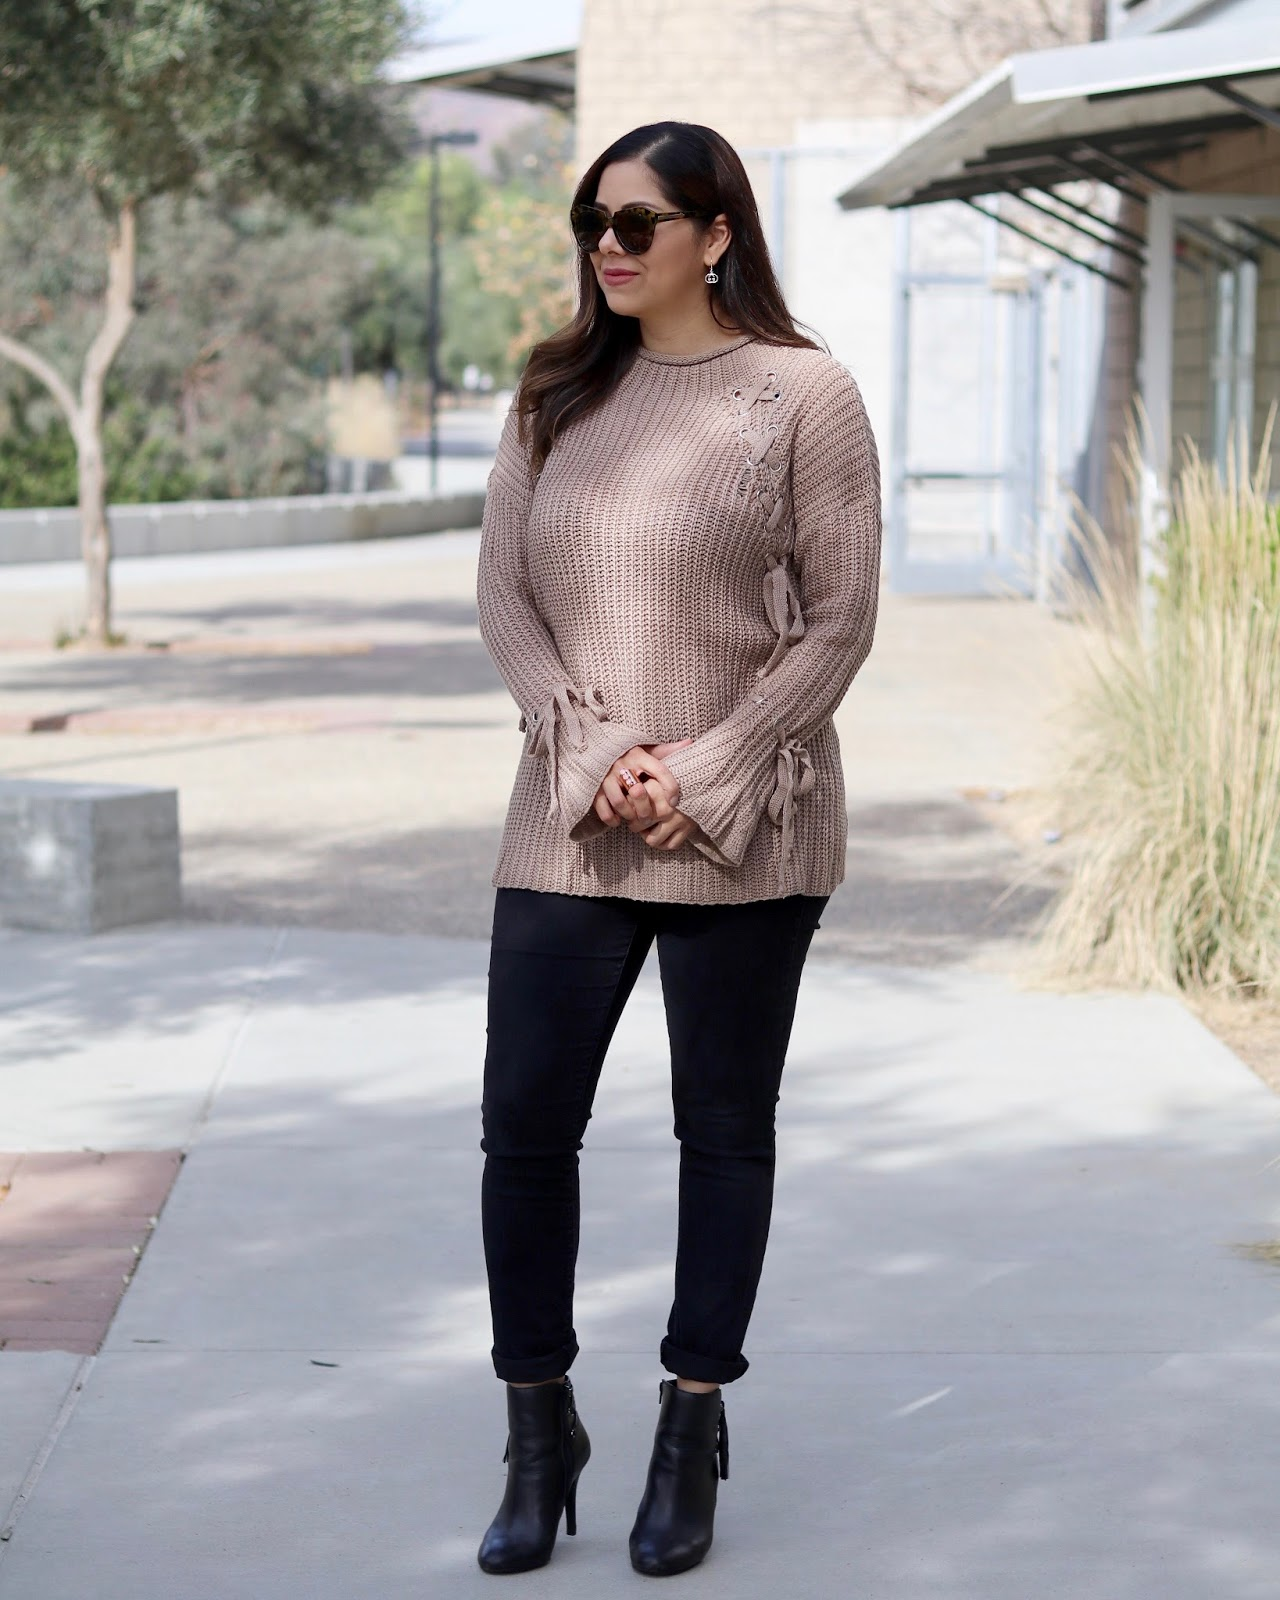 stylish sweater outfit, stylish mom outfit, affordable fashion blogger